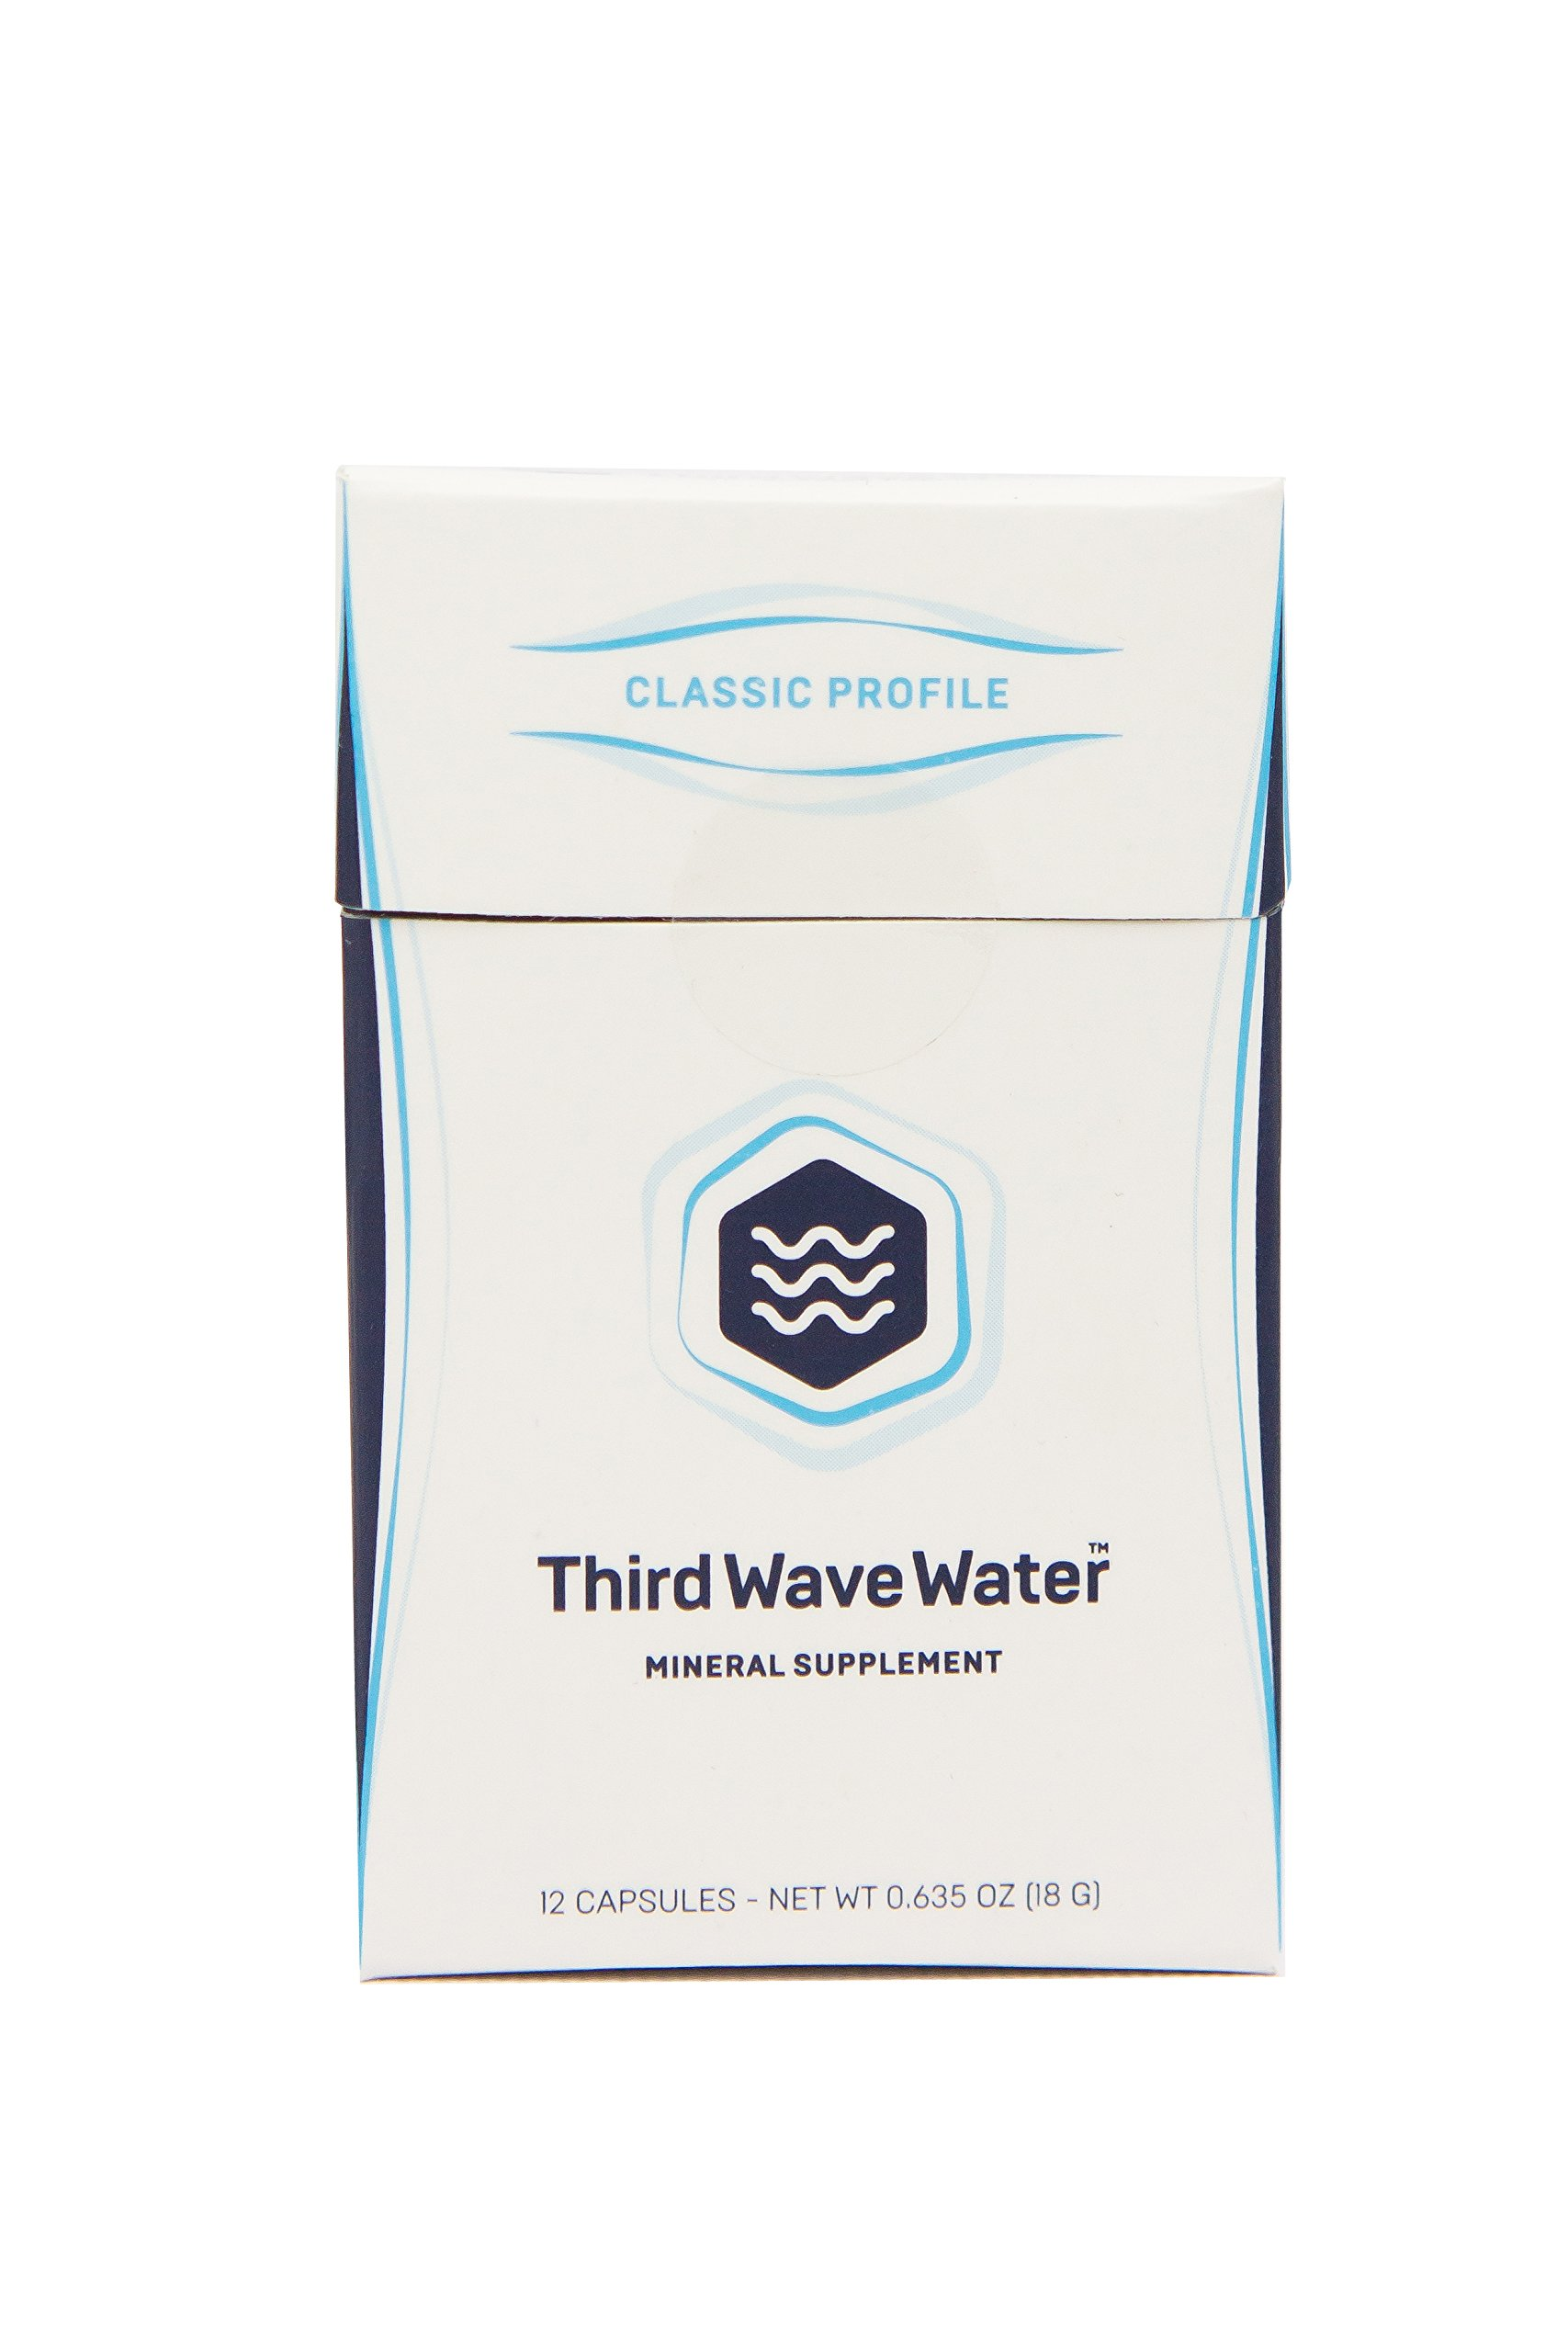 Third Wave Water Mineral Enhanced Flavor Optimizing Coffee Brewing Water, Classic Flavor Profile,  0.635oz